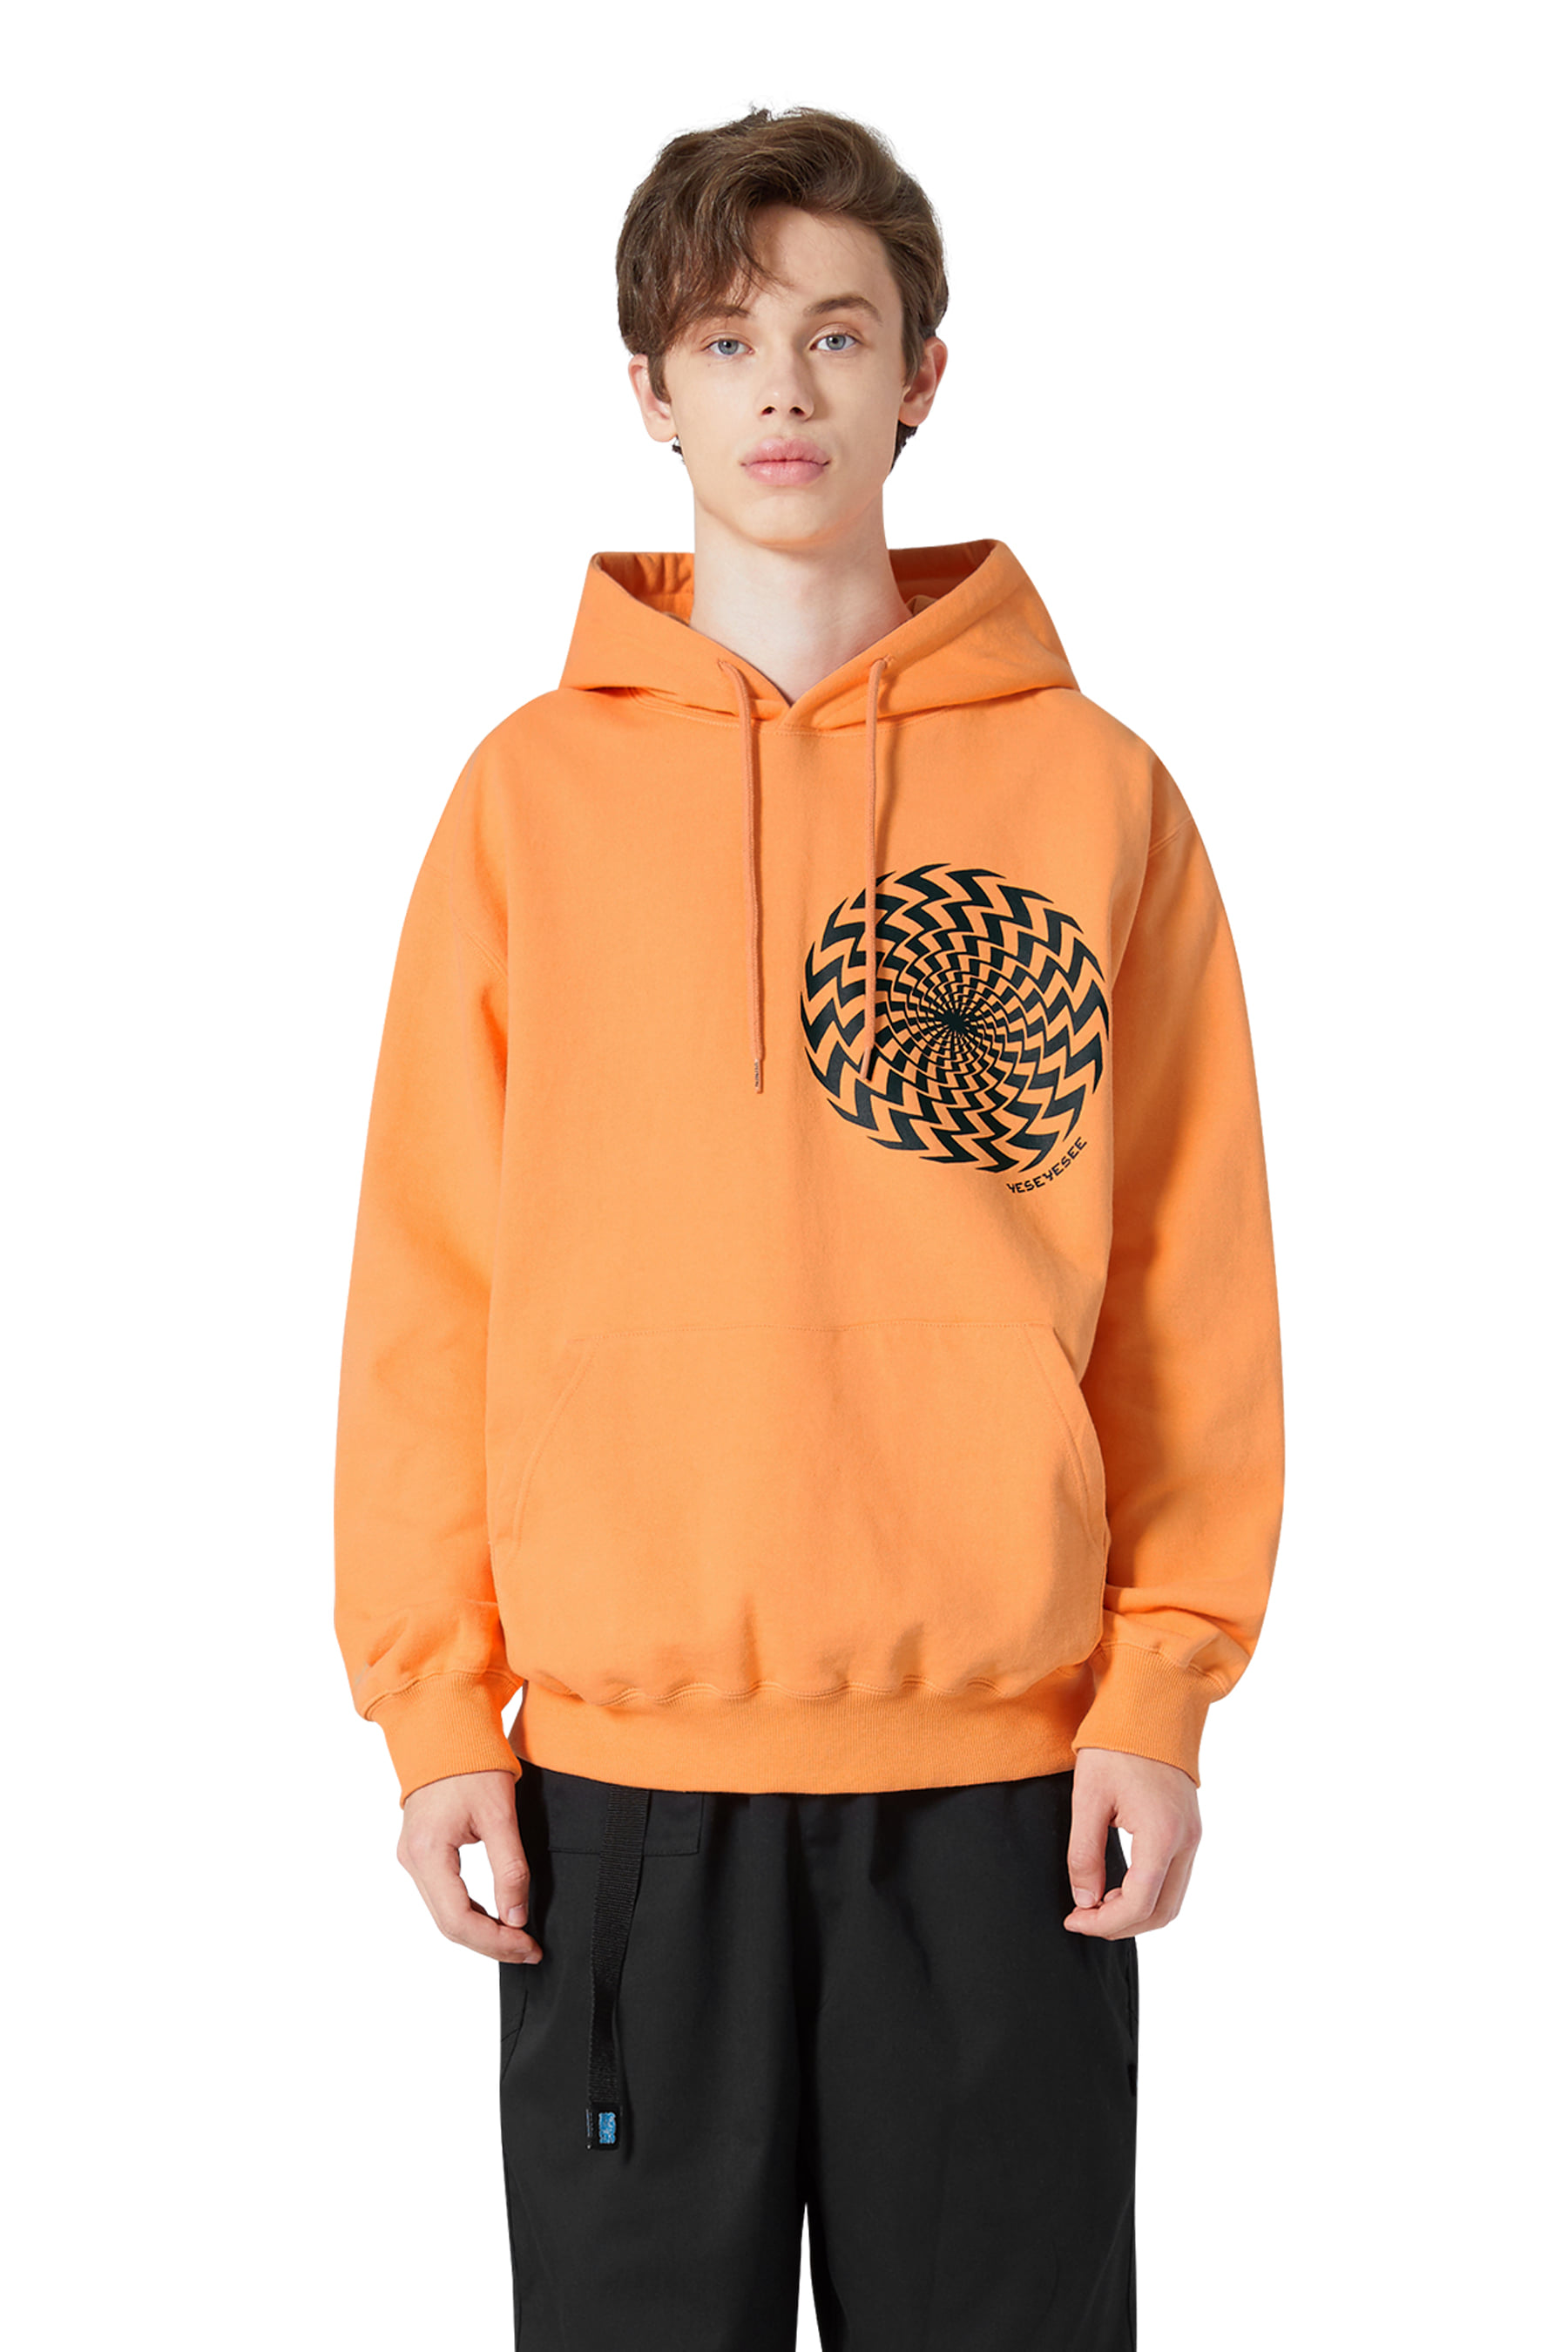 Y.E.S Twister Hoodie Orange